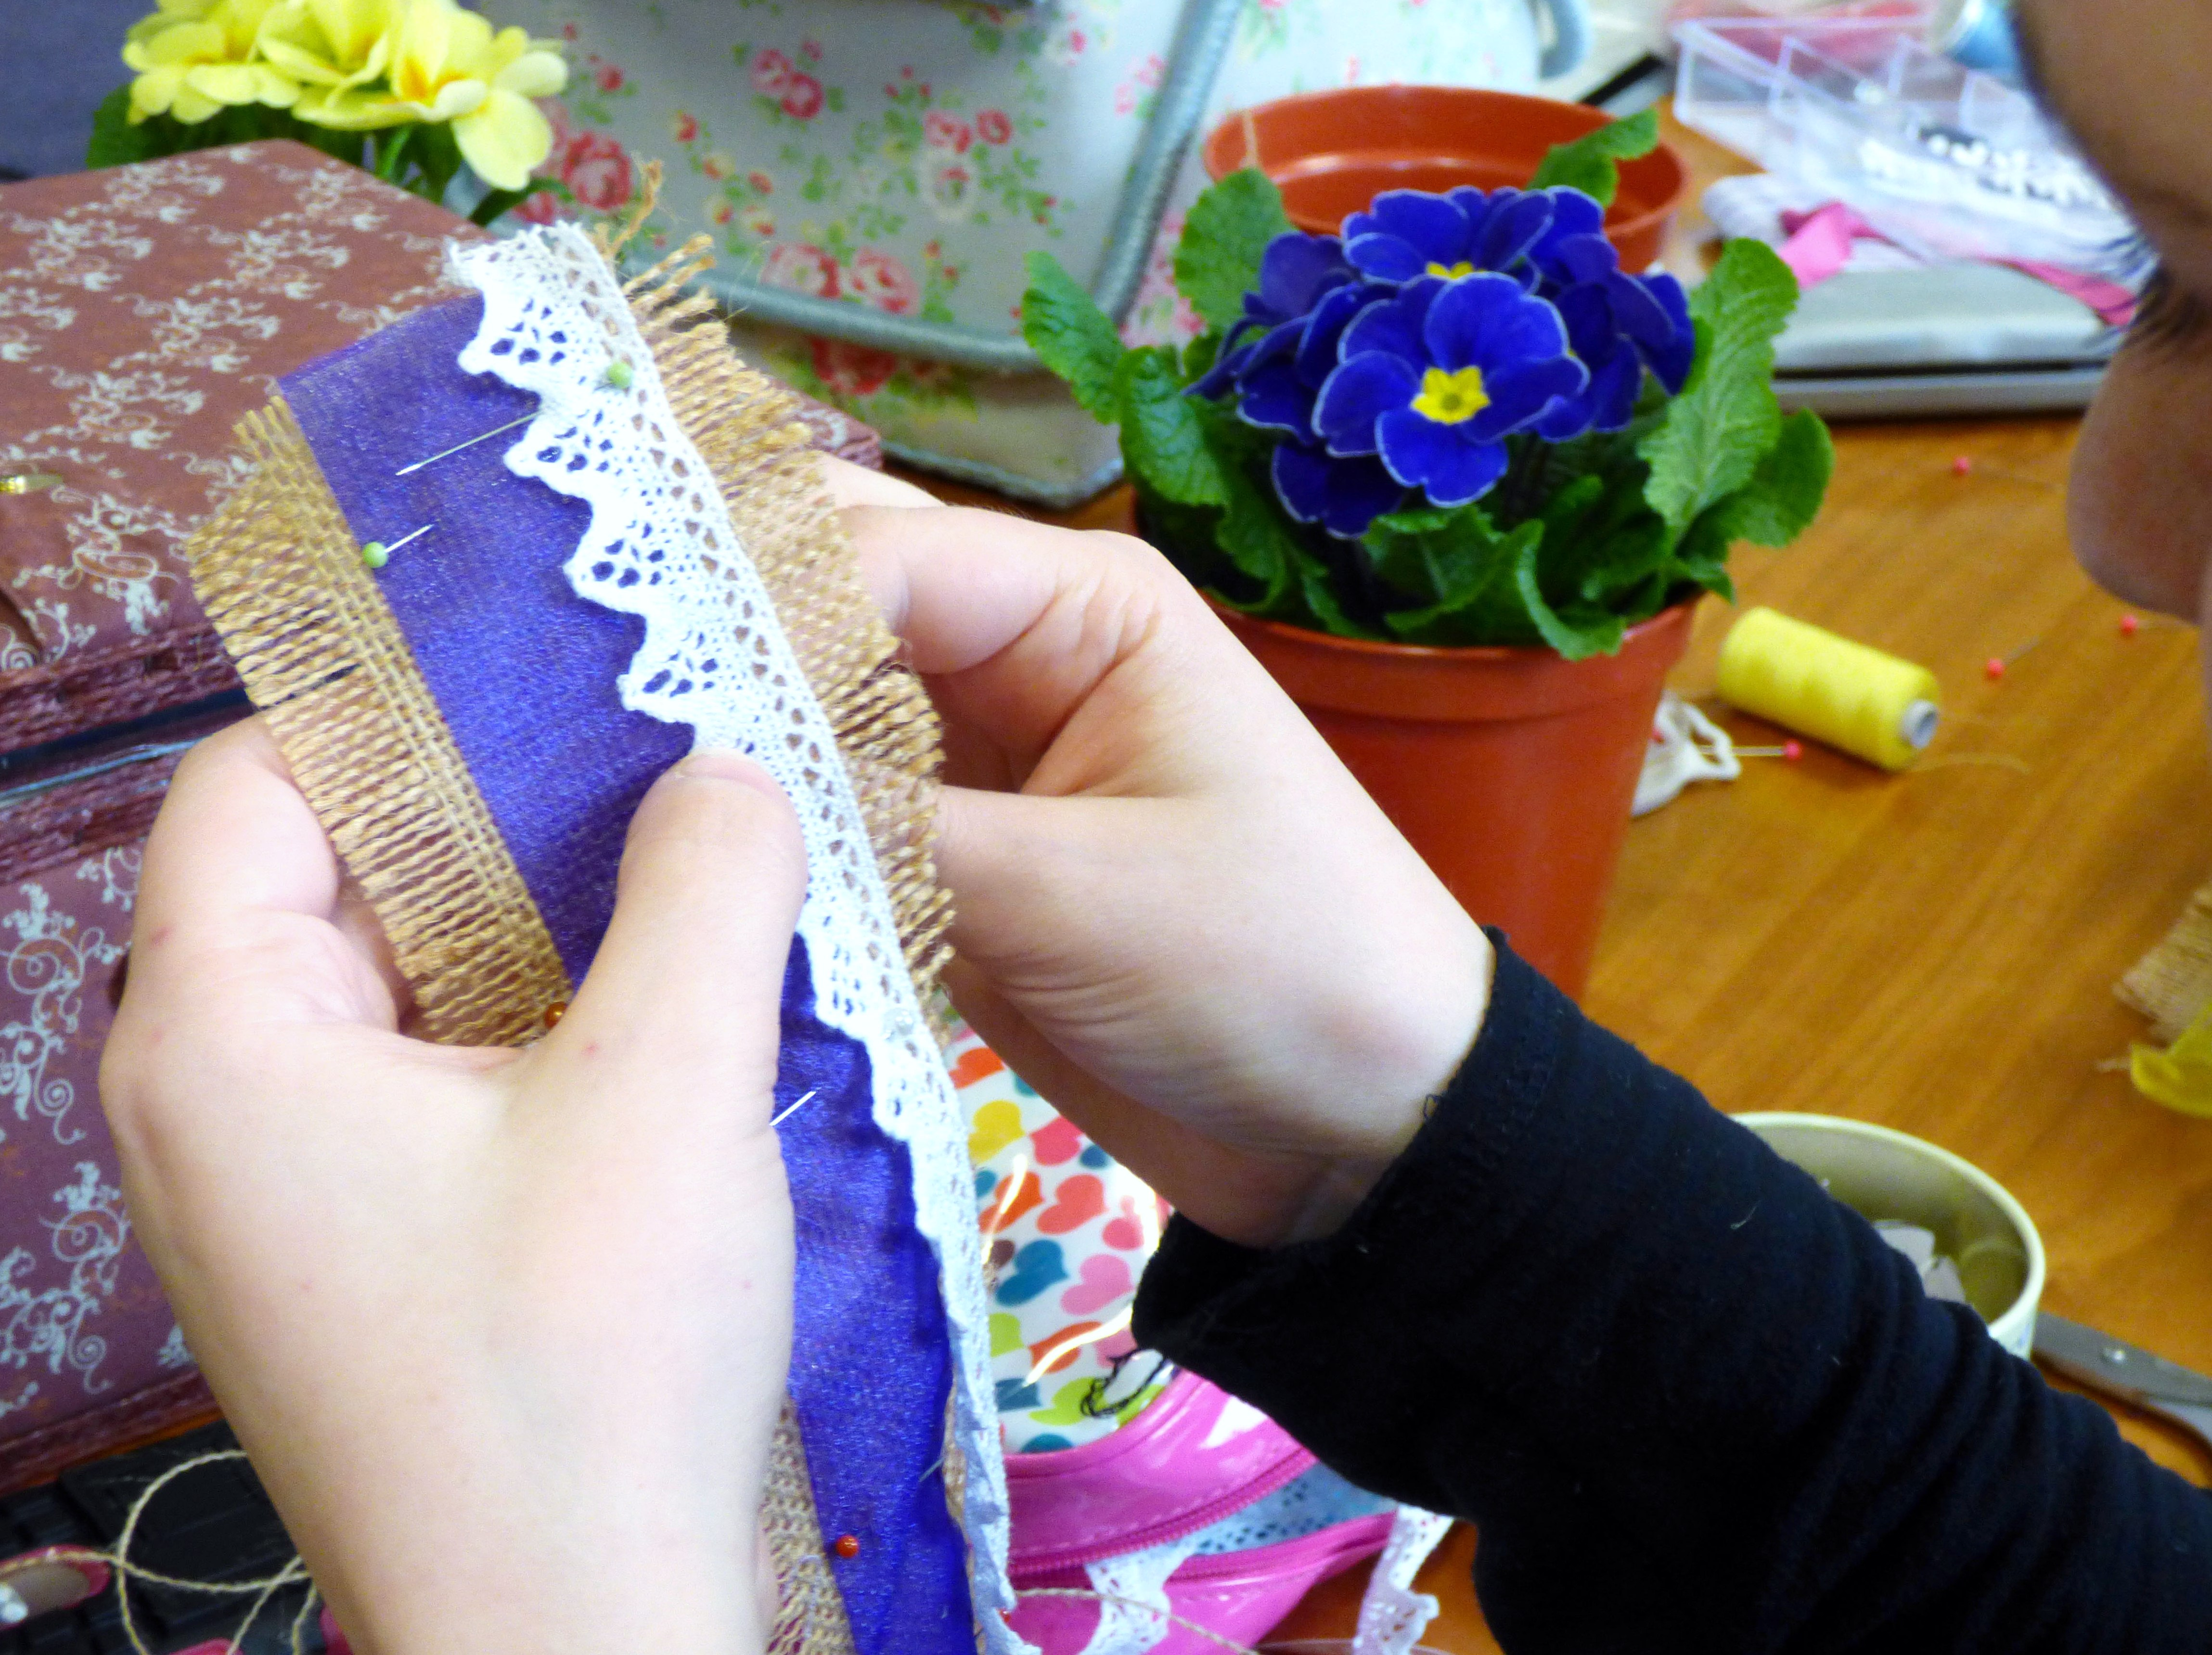 Chloe is decorating her plant pot band with lace and chiffon